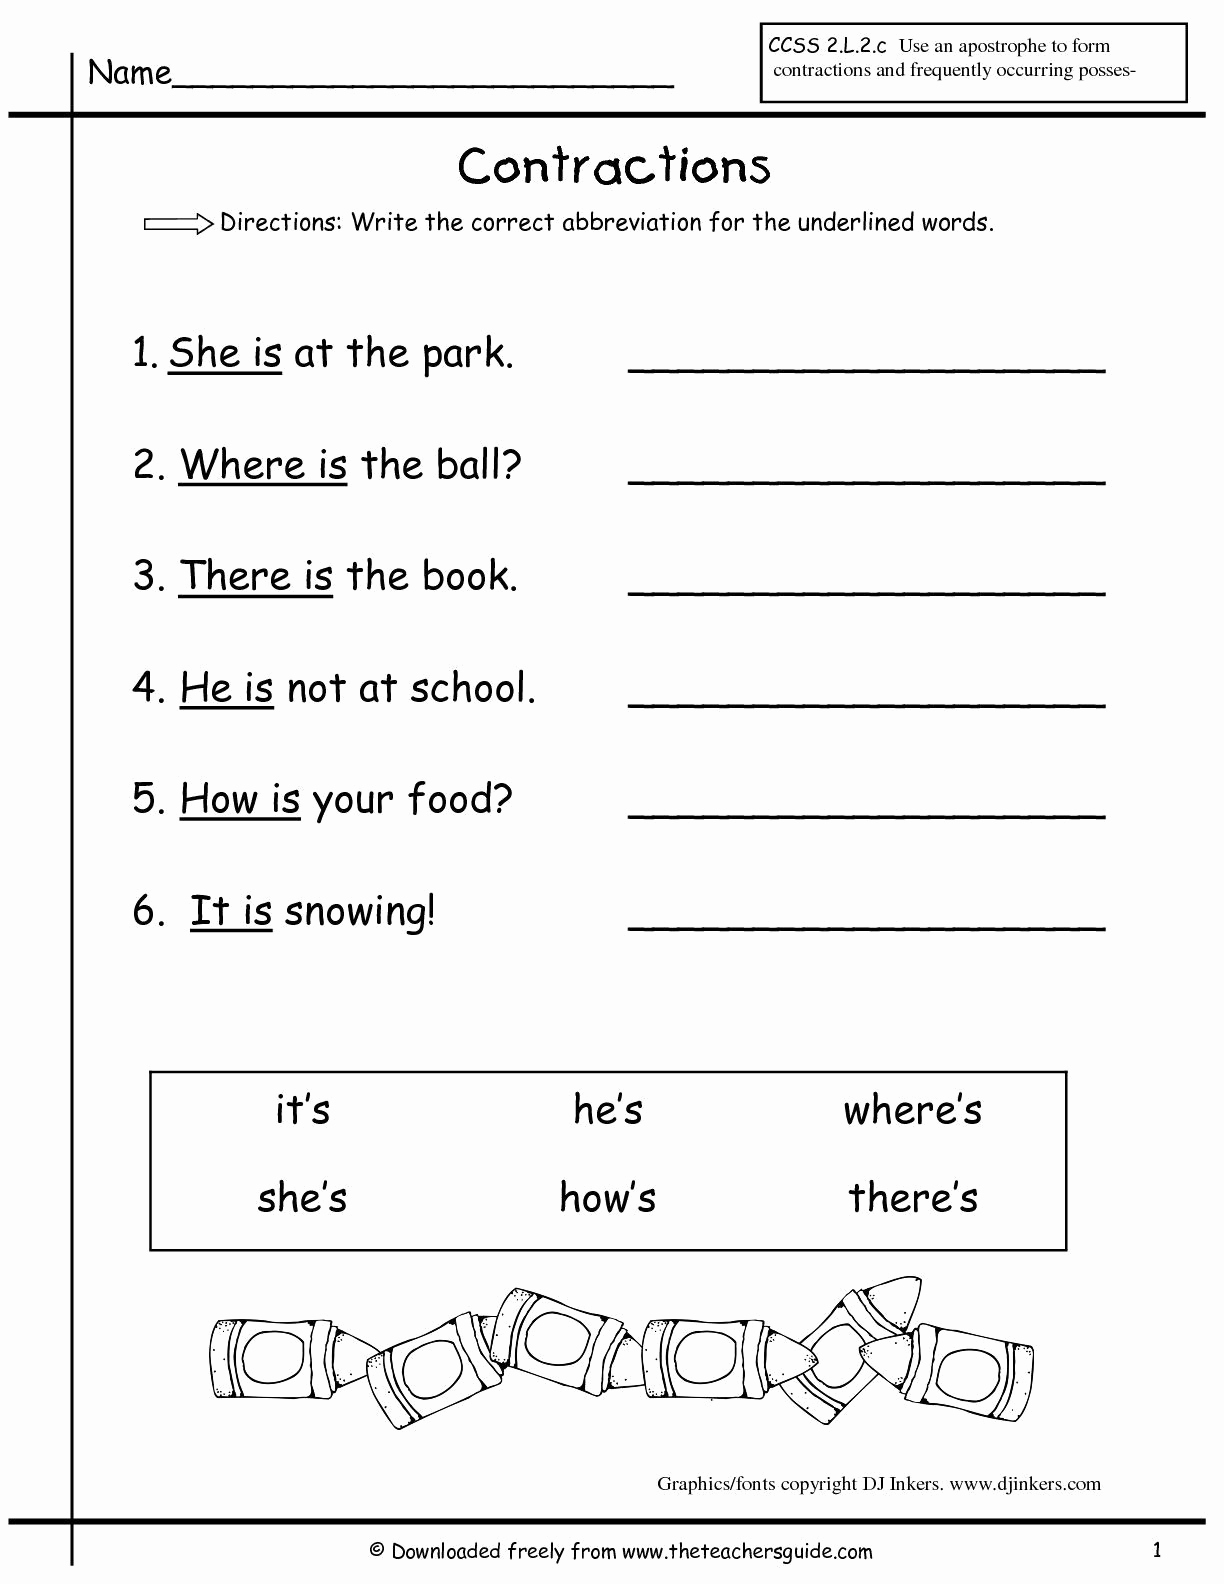 Science Worksheets for 7th Grade Beautiful 7th Grade Science Worksheets Pdf